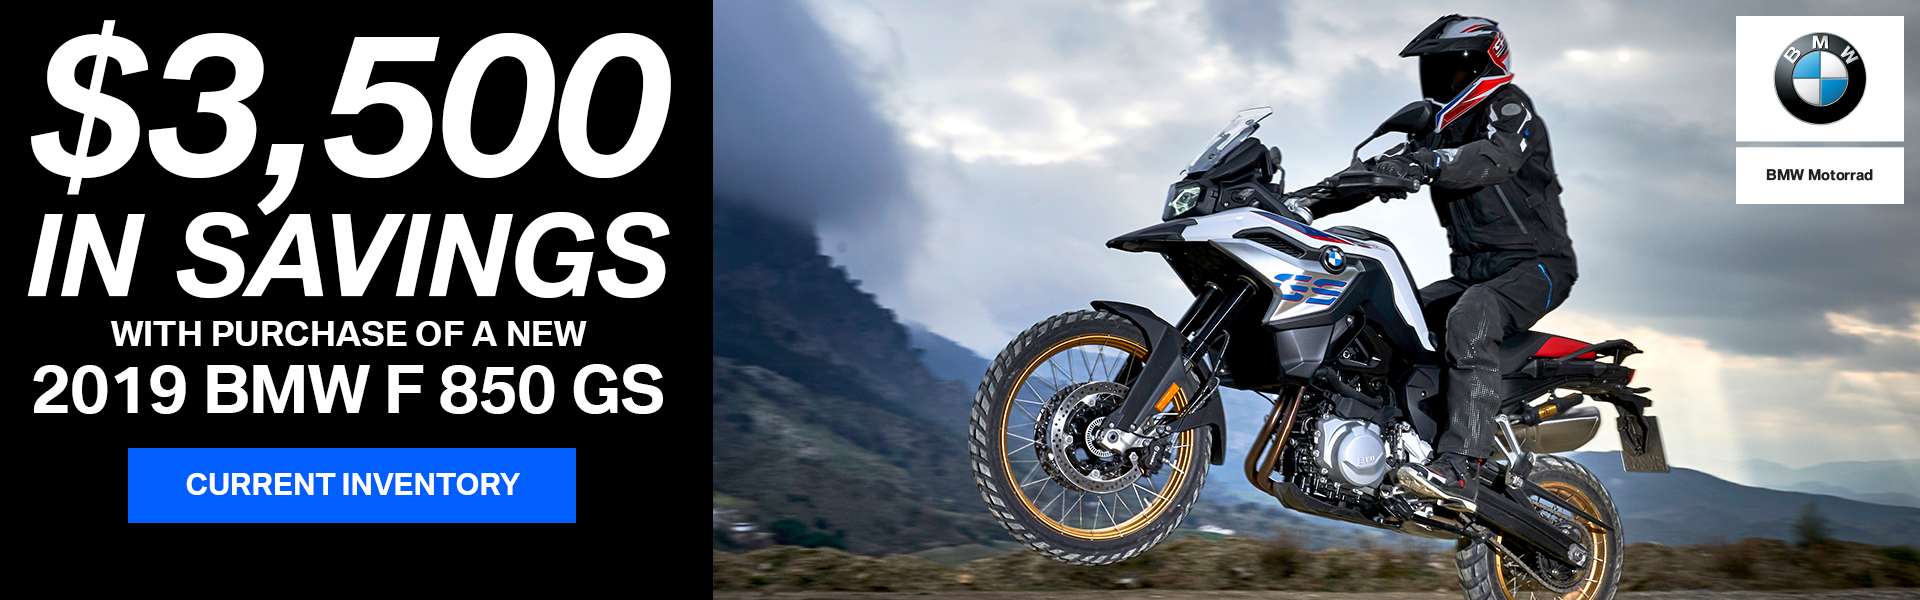 $3500 in Savings with Purchase of a new 2019 BMW F 850 GS